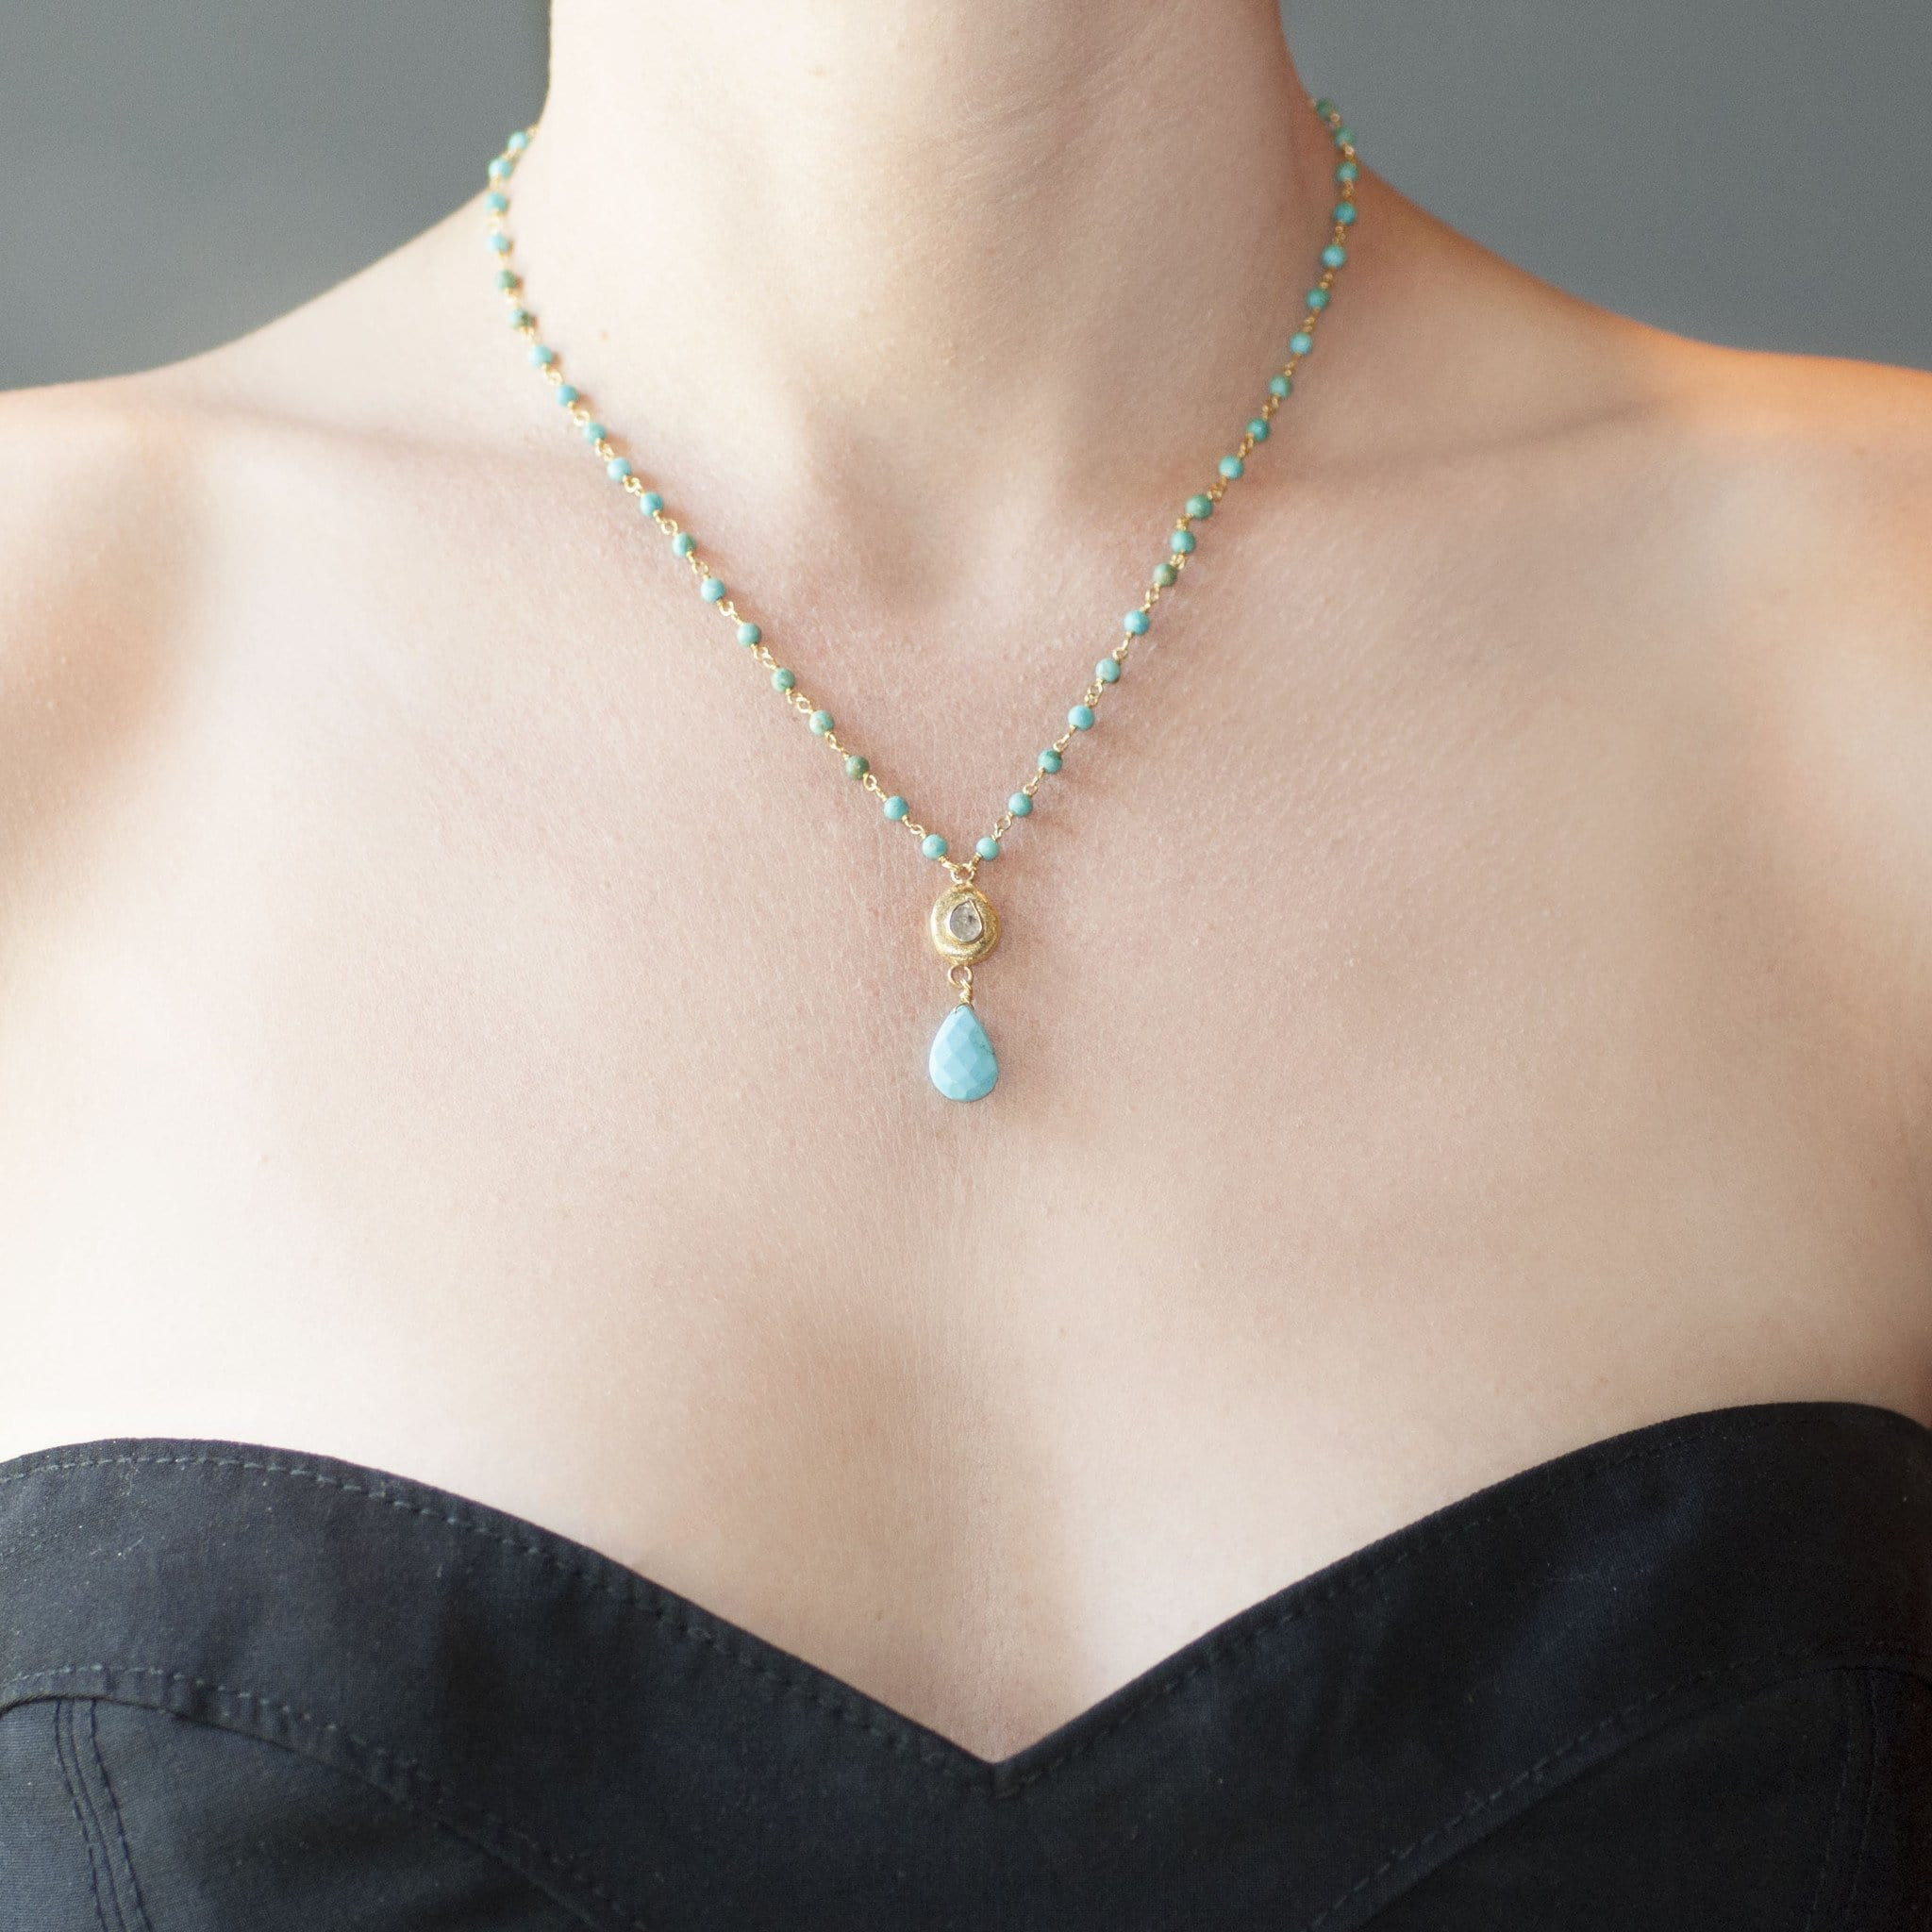 Turquoise Bead Diamond Seed Pendant Necklace - Curated Los Angeles